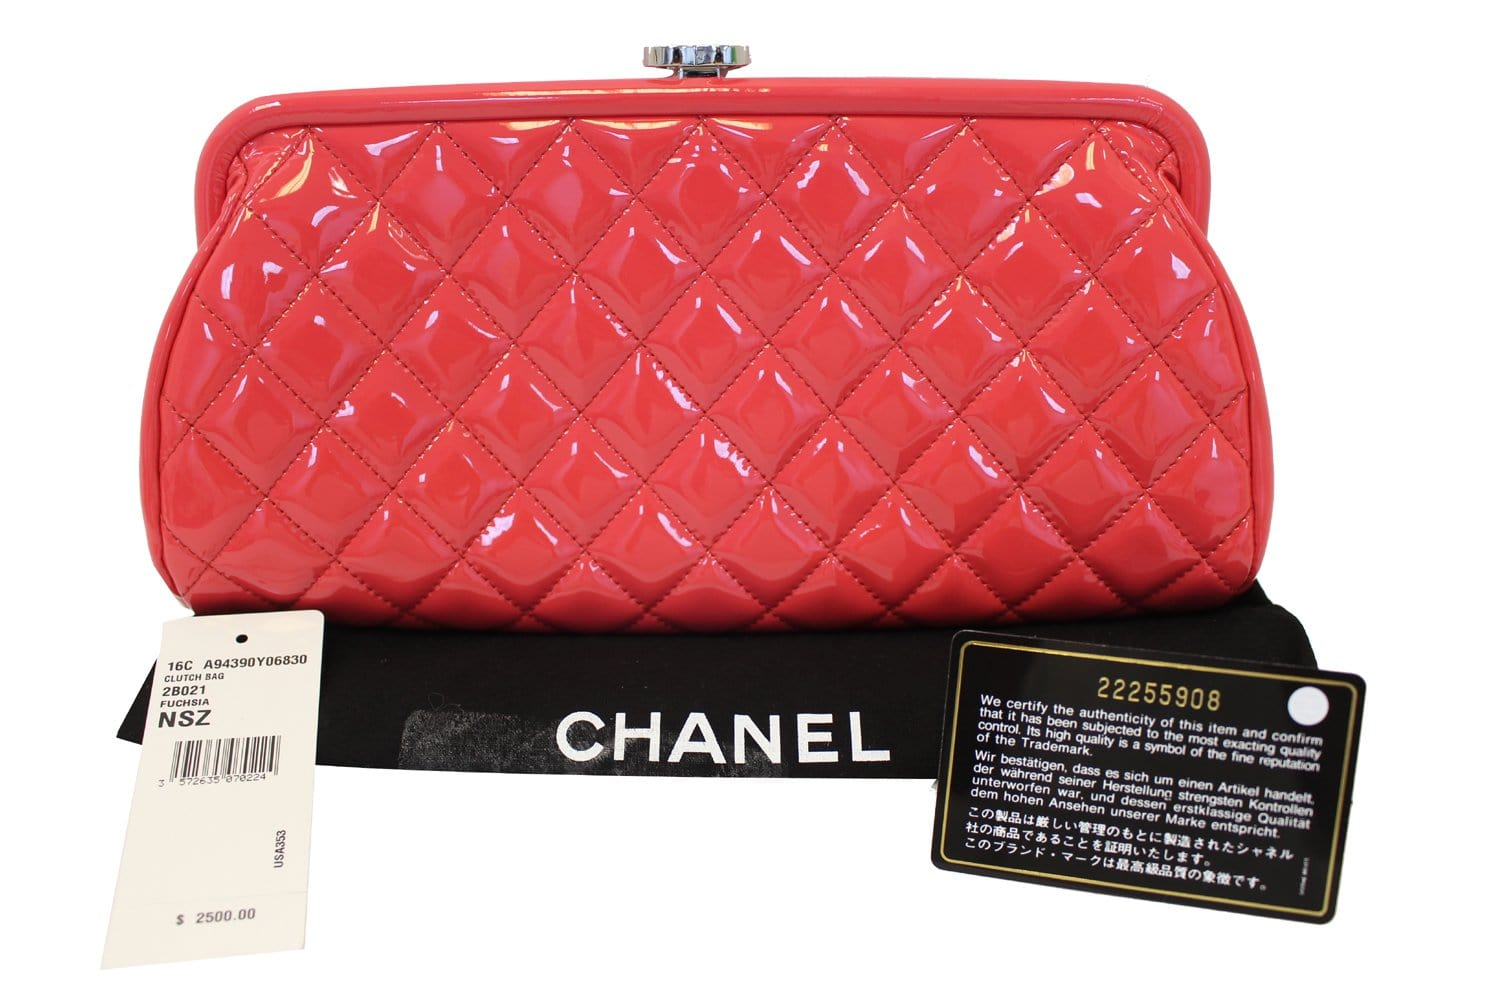 6f162973ed32 CHANEL Pink Quilted Leather Timeless Clutch Bag - Final Call